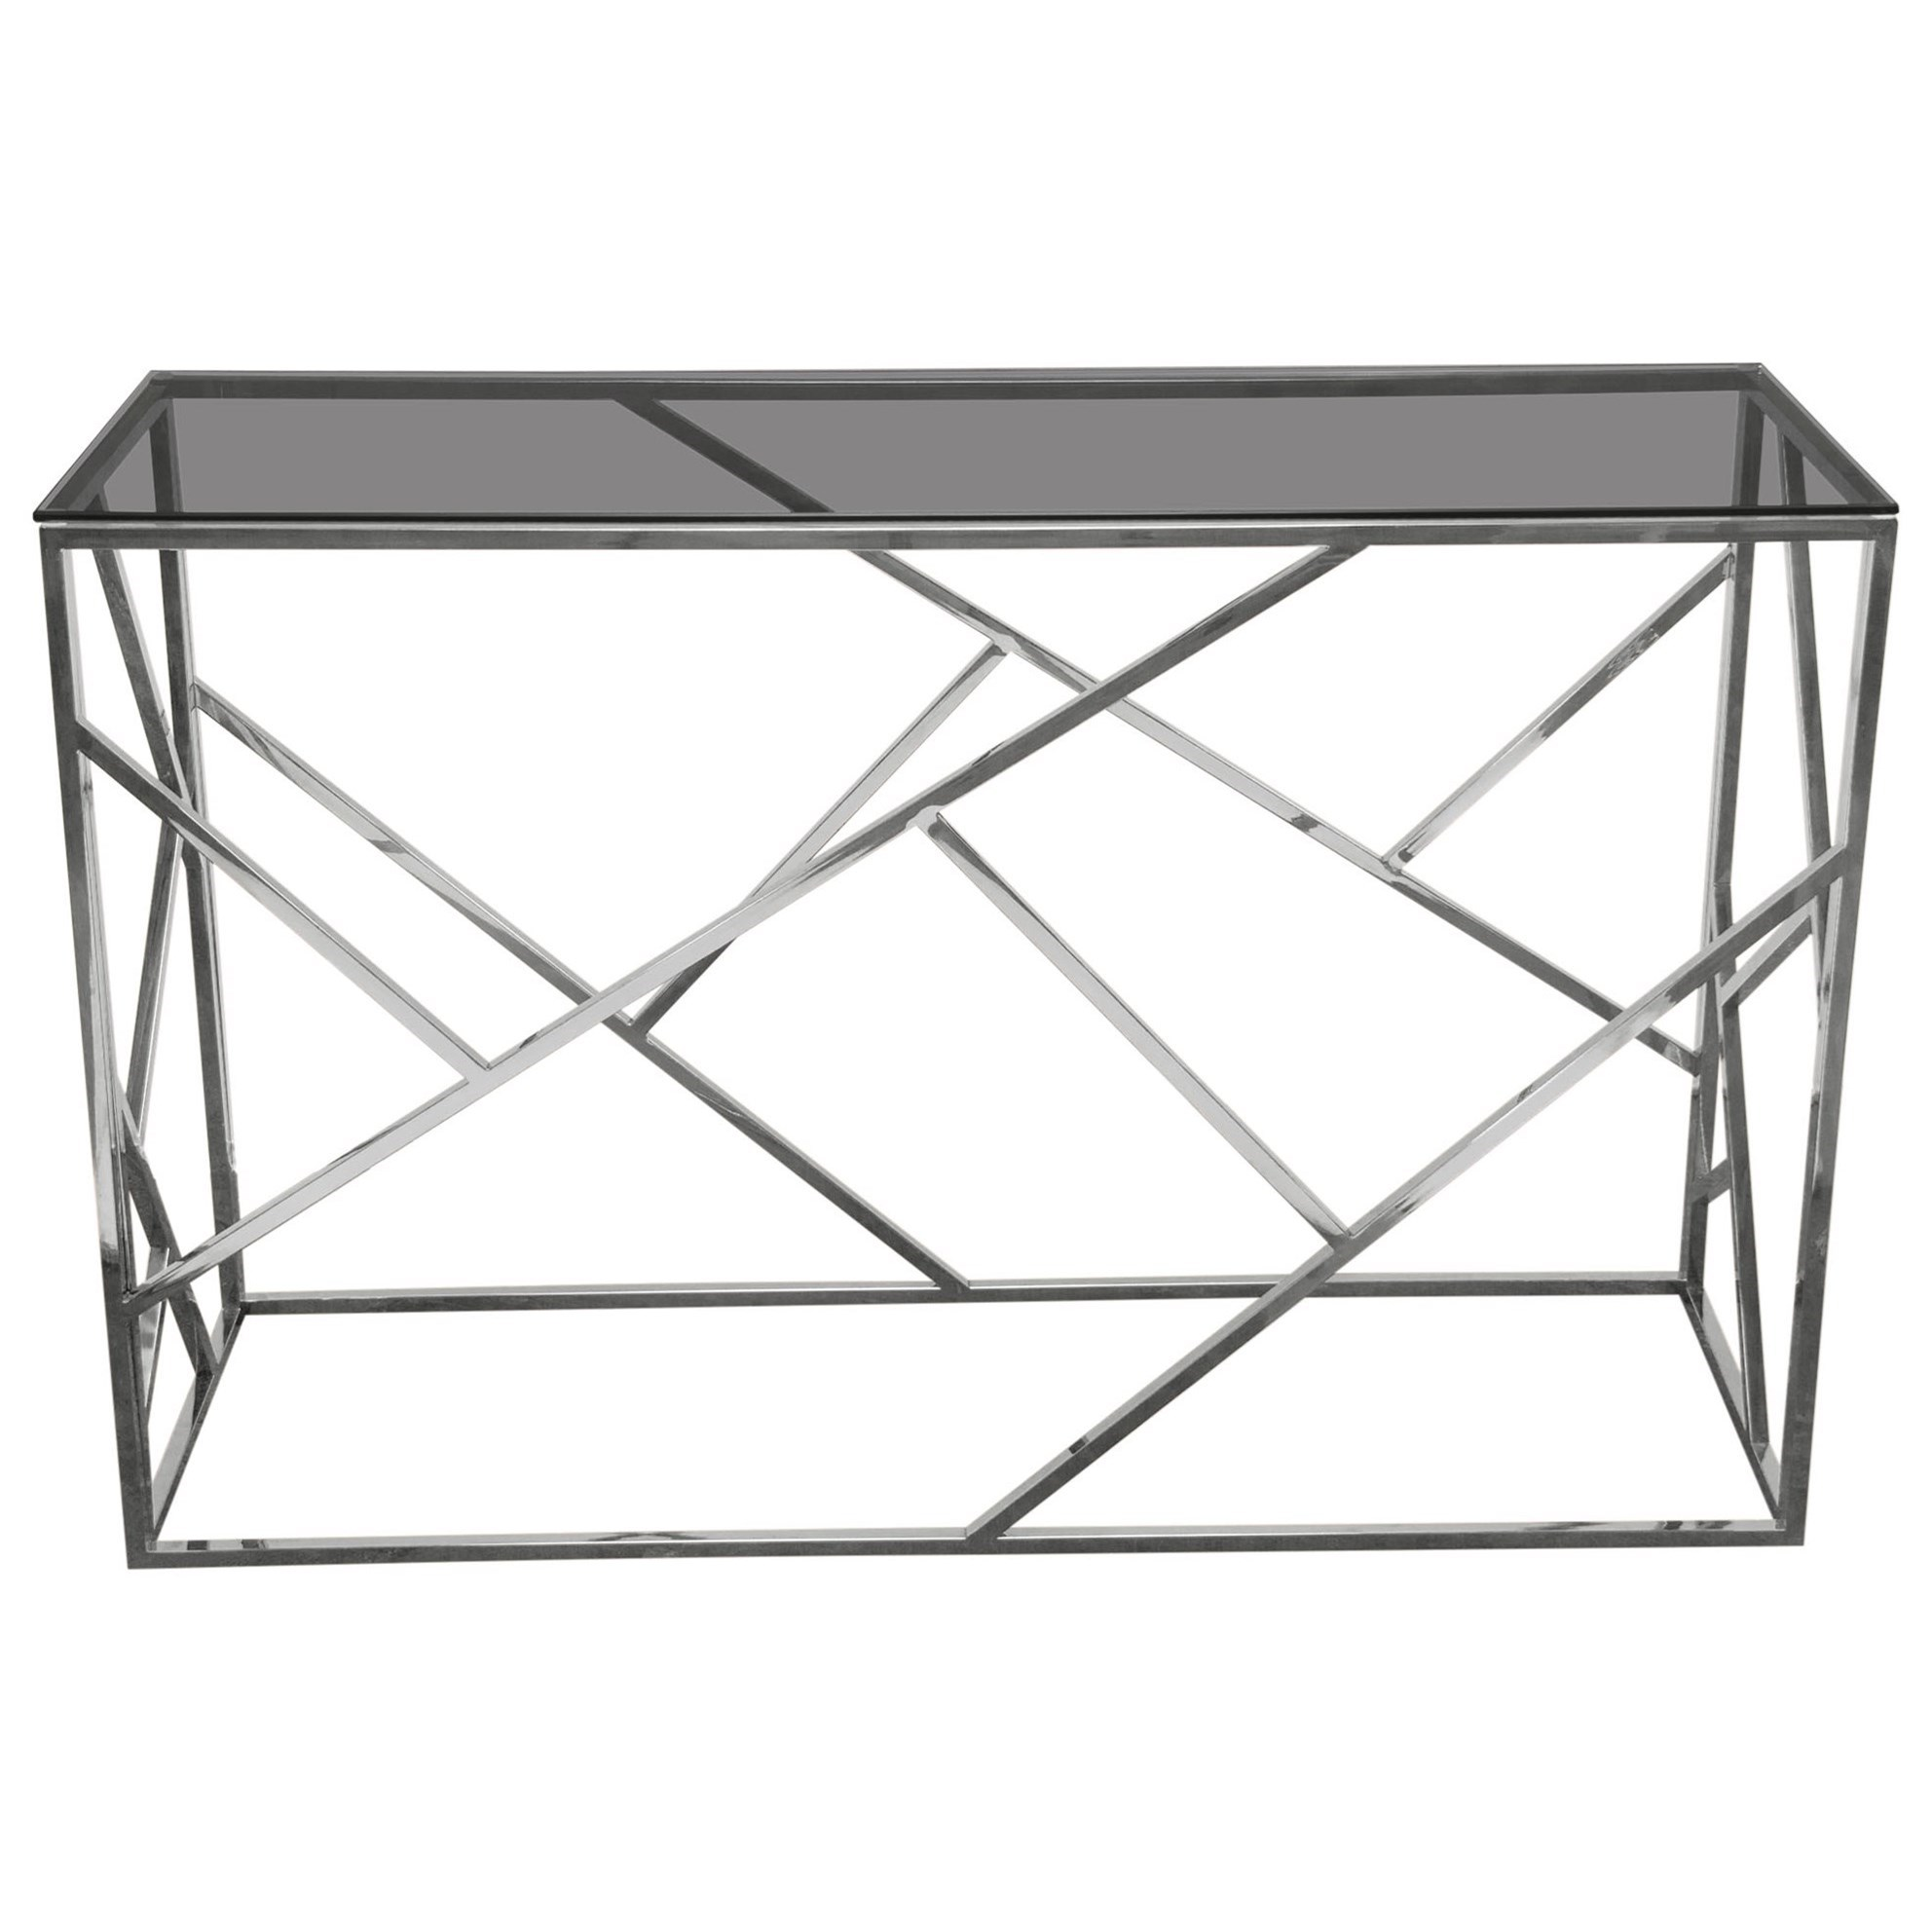 Nest Console Table by Diamond Sofa at Red Knot